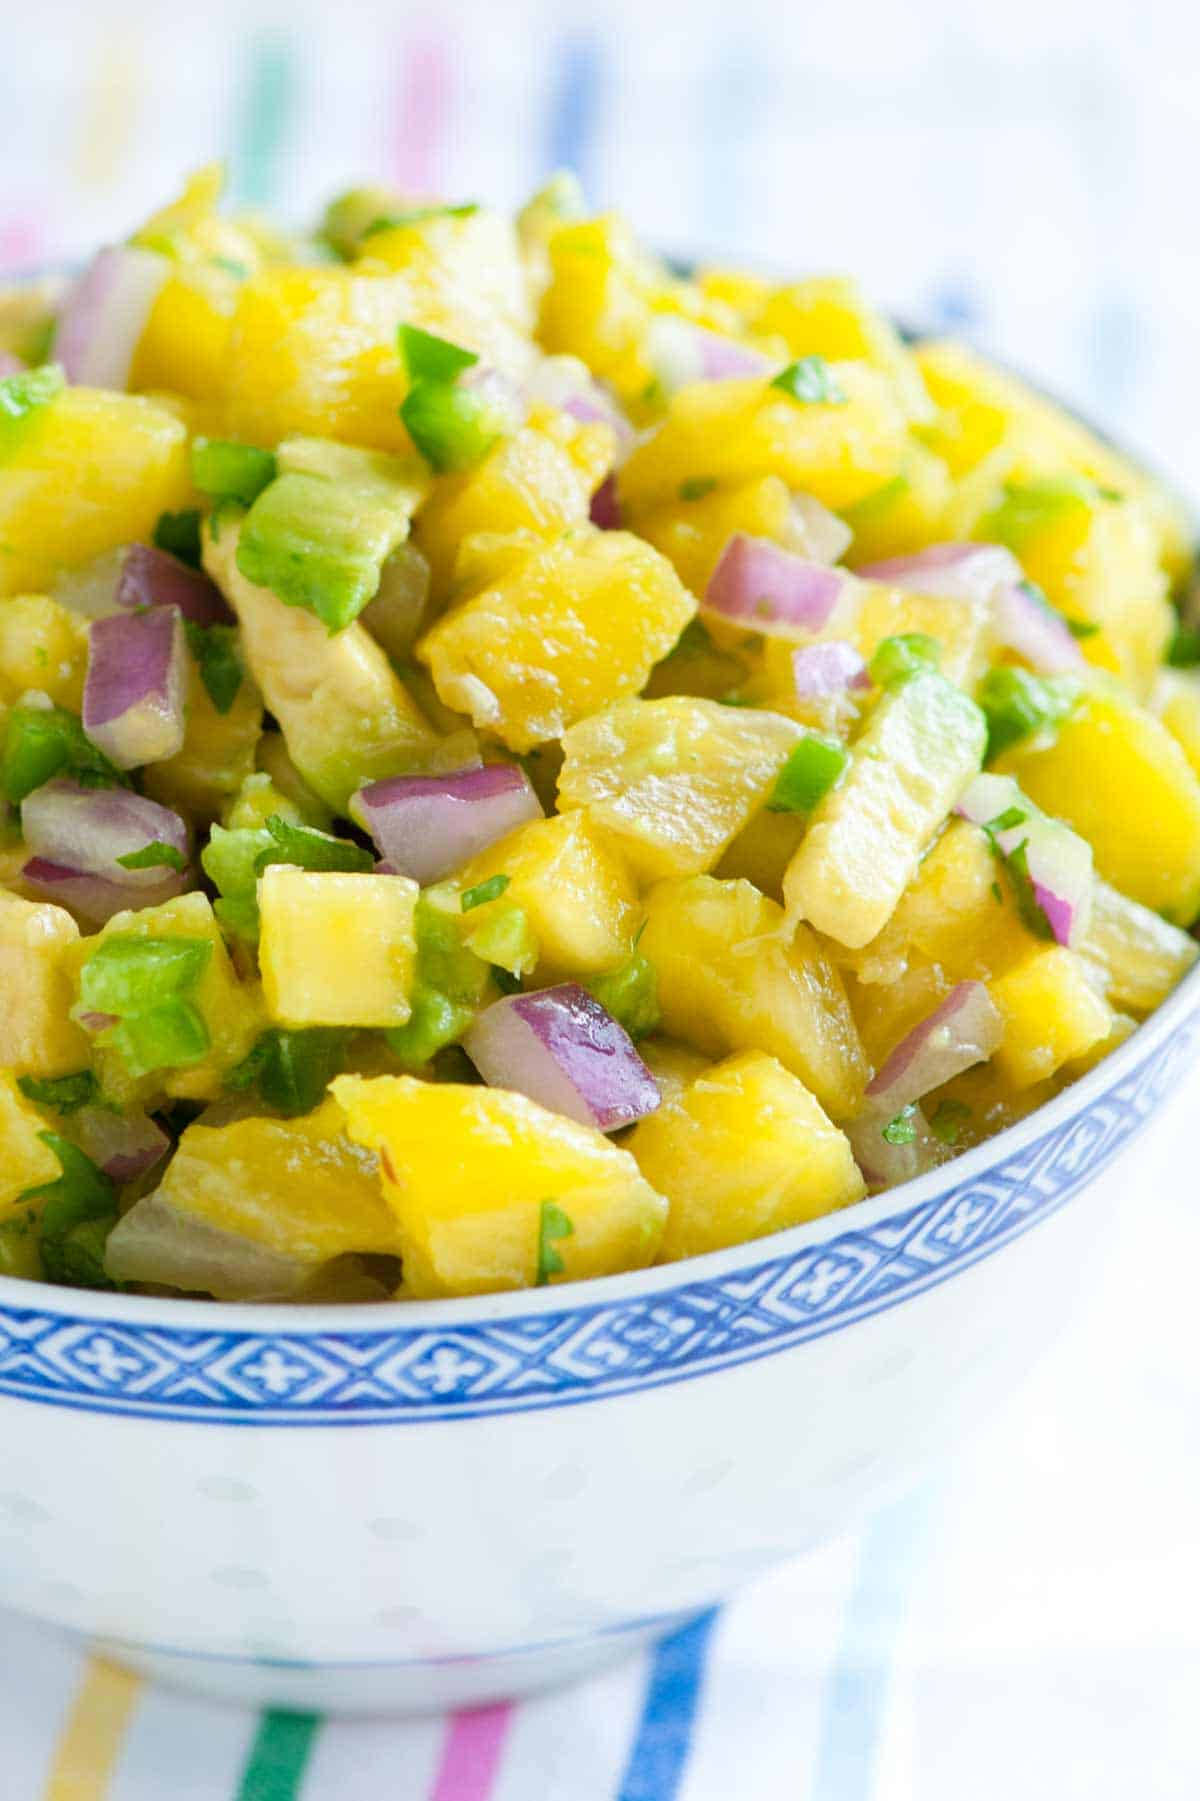 How to Make Spicy Pineapple Salsa